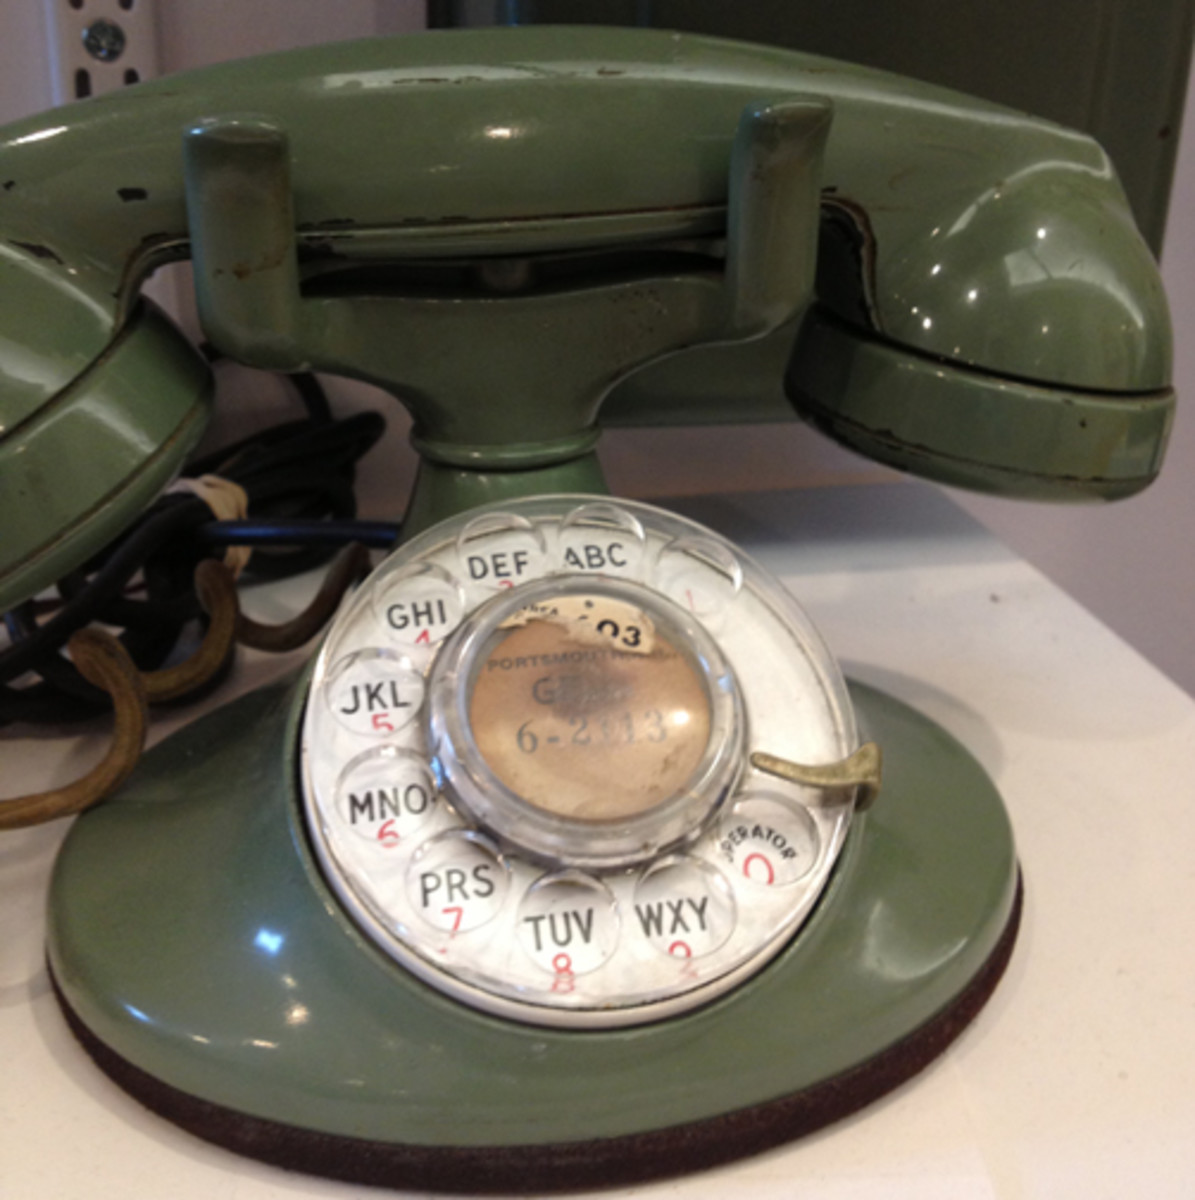 Many folks still living in rural areas still own a rotary dial phone. They prefer to keep such a phone in case of a power outage.